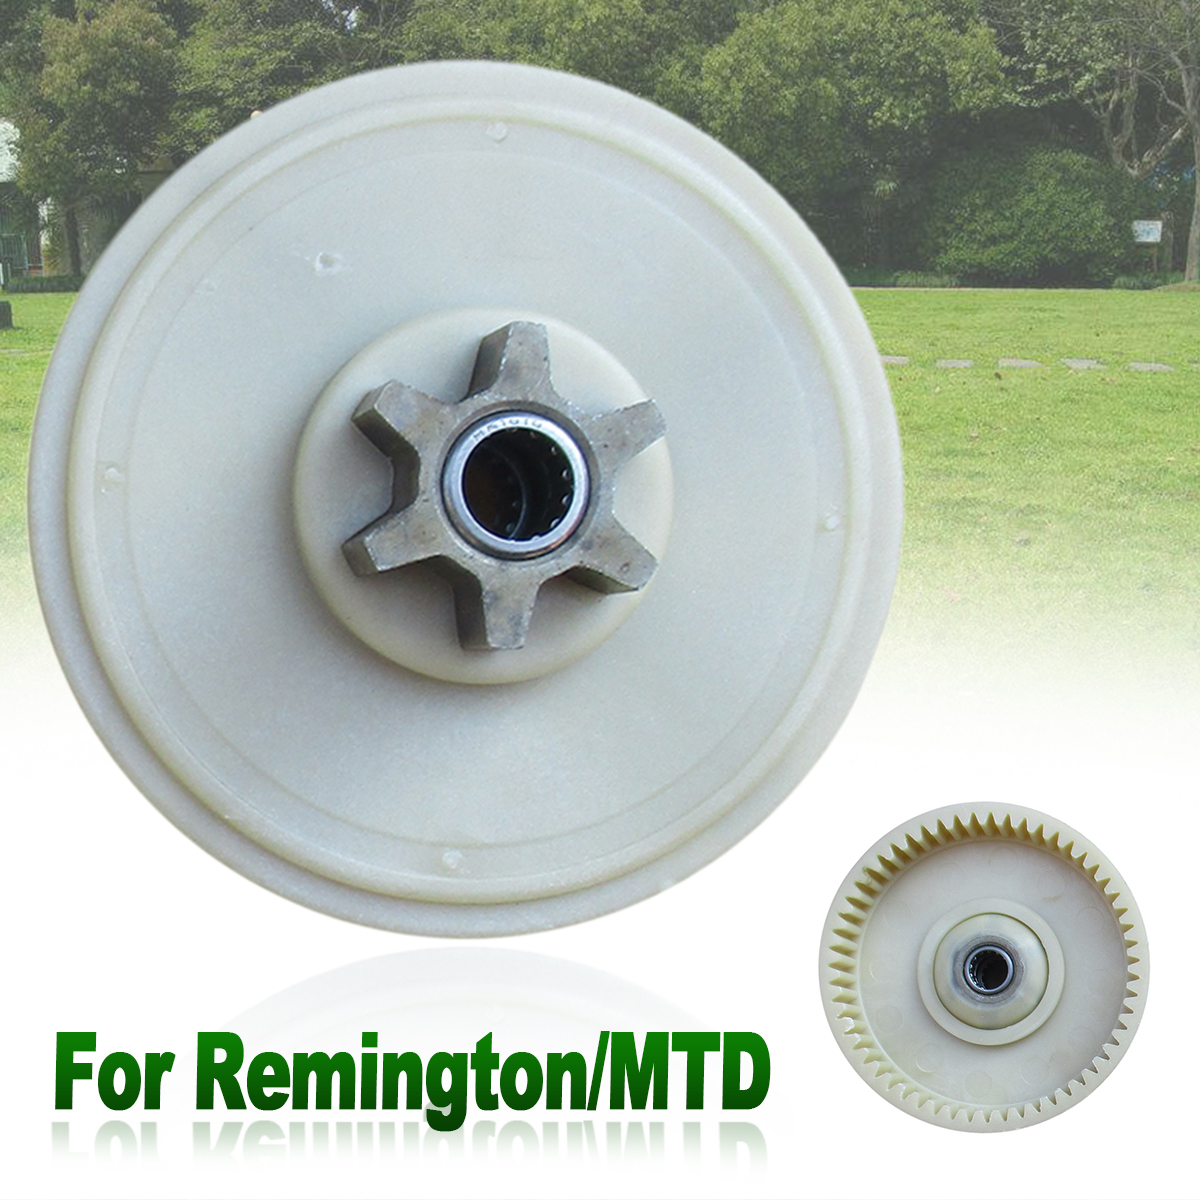 107713-01 717-04749 Electric Chainsaw Polesaw Sprocket Gear For Remington / MTD Chainsaw Replacement Parts